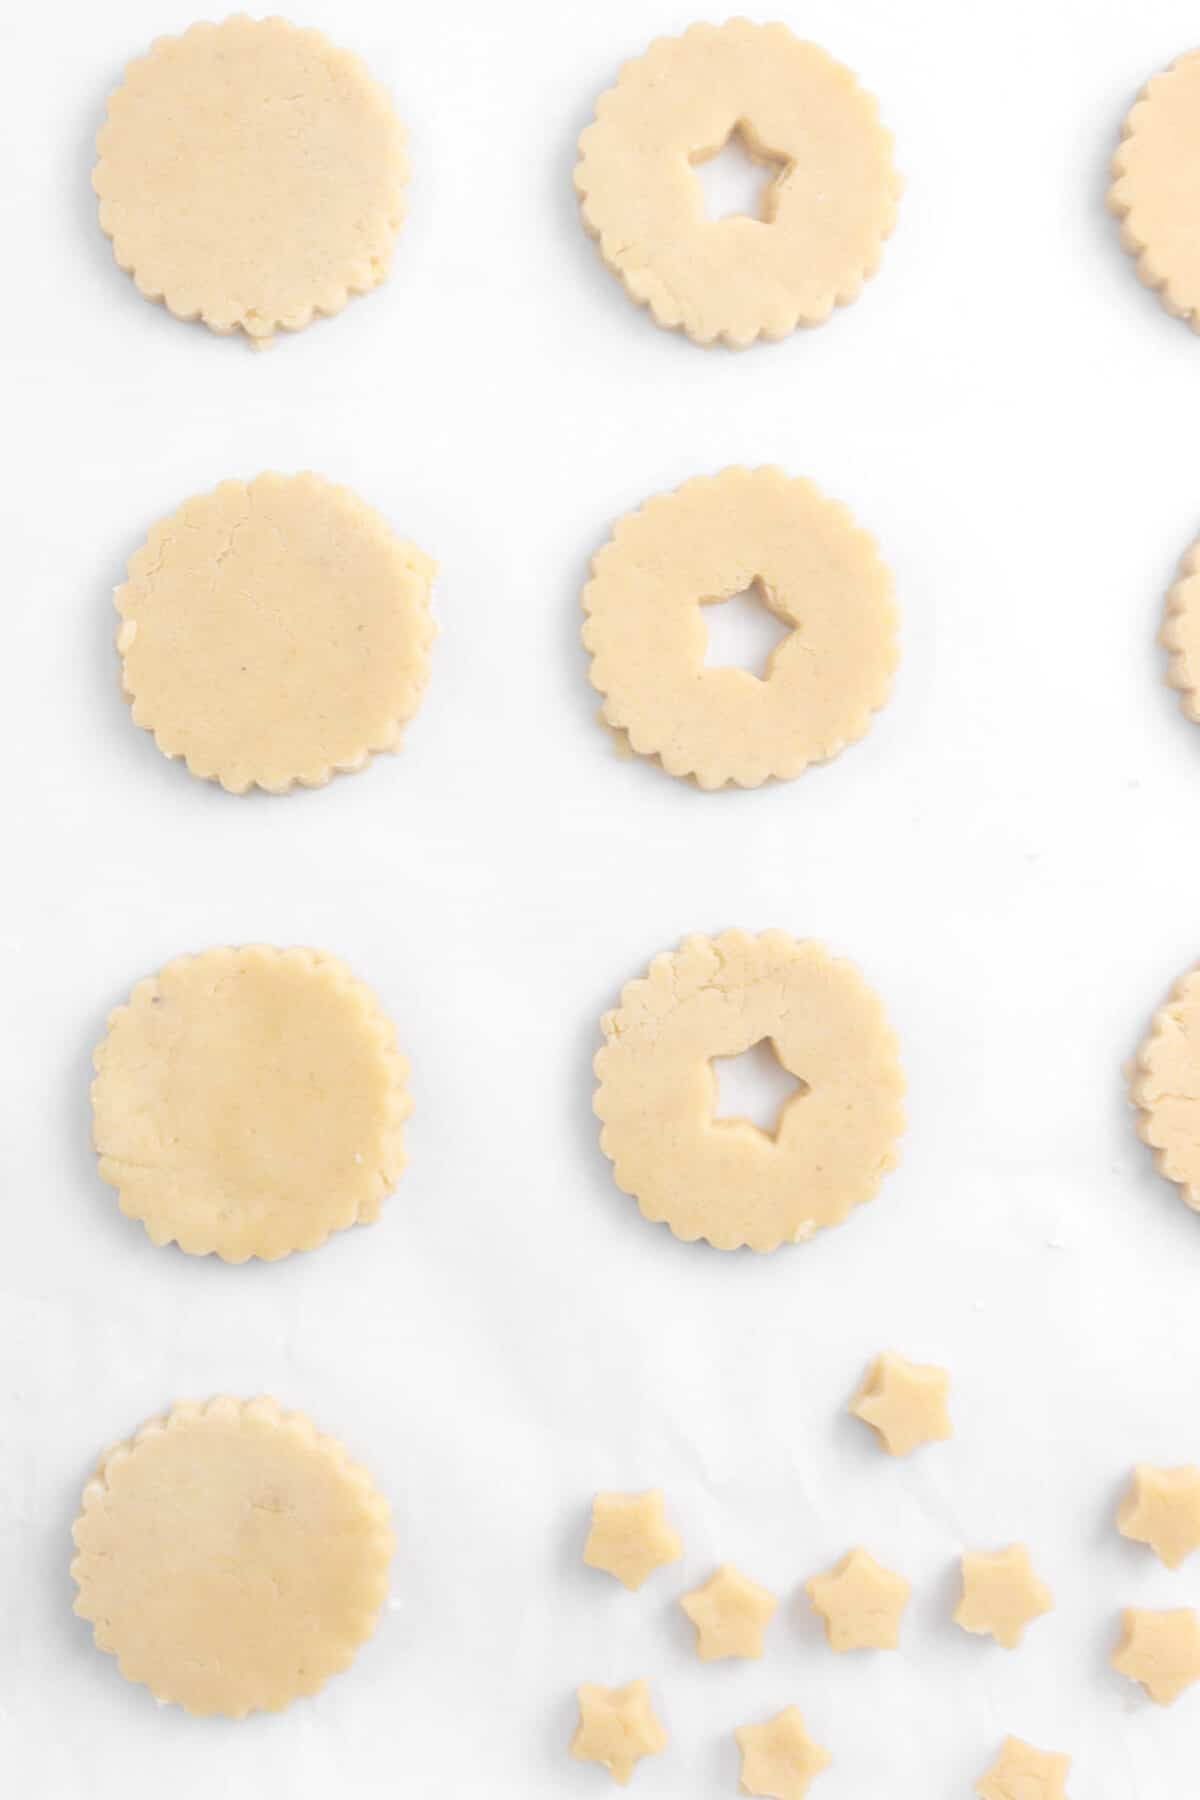 seven cookies on parchment paper with three stars cut out of three cookies